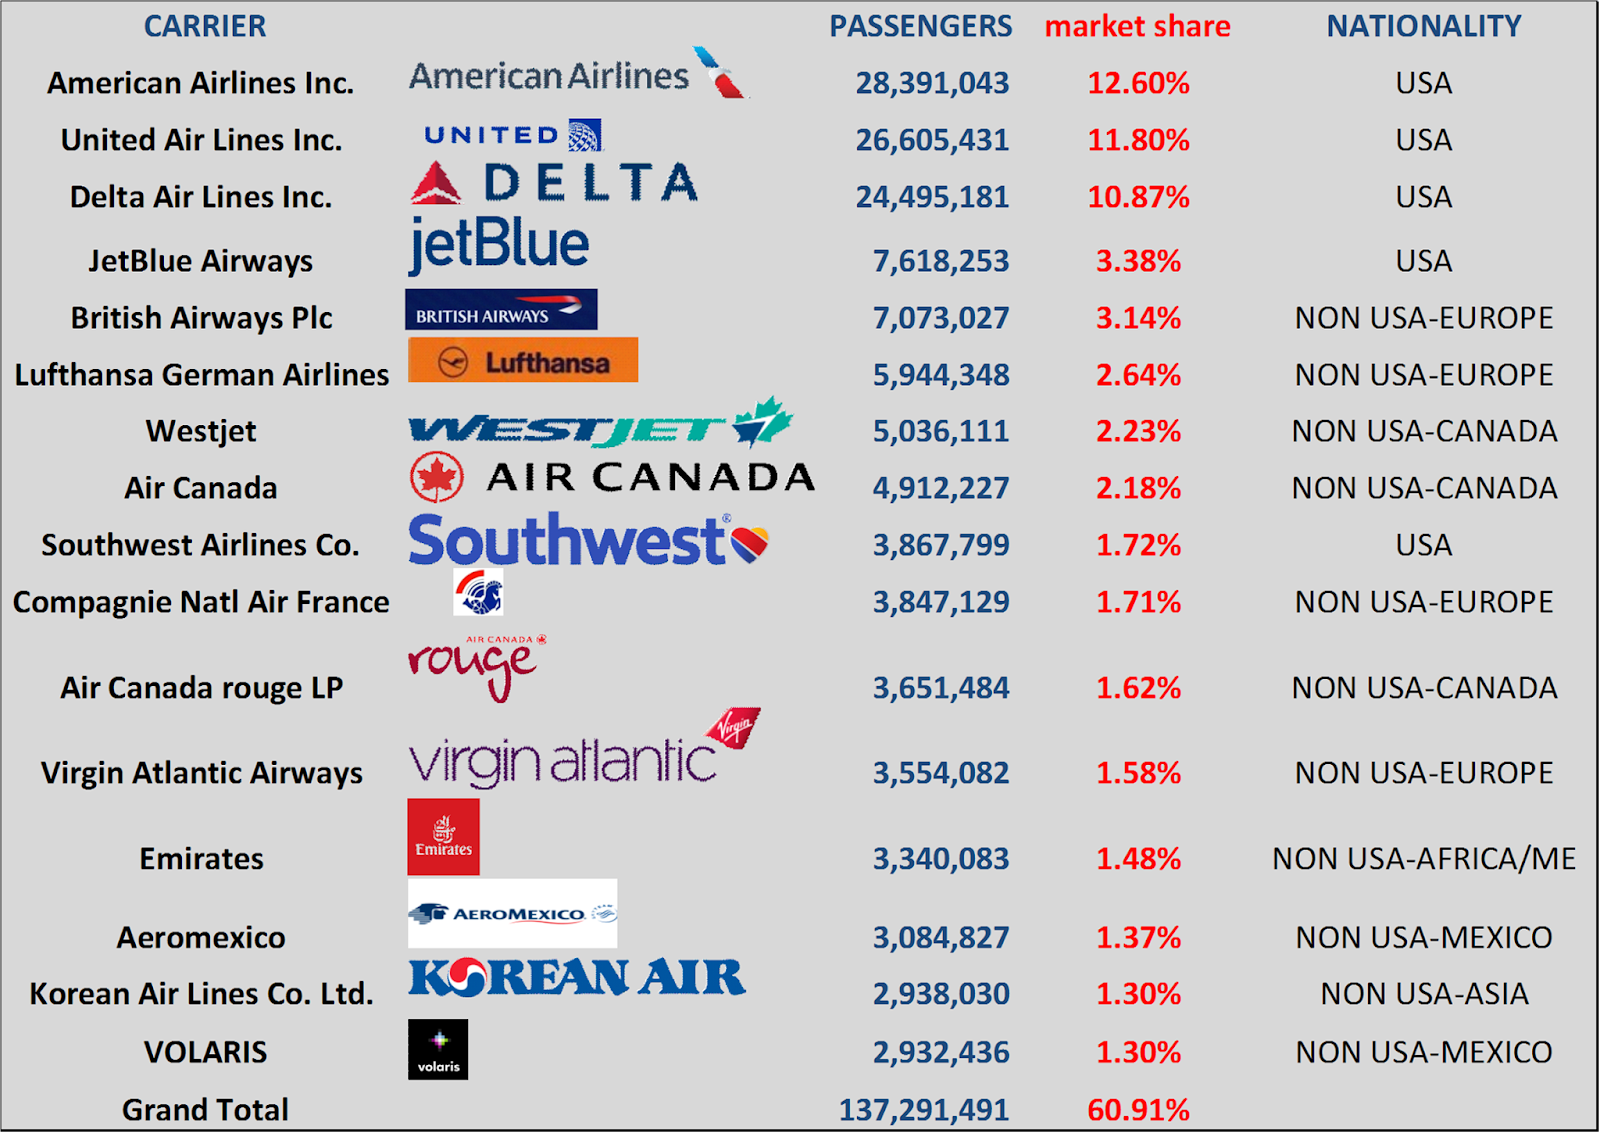 the majority of the traffic was carried by american airlines which are holding a 48 market share followed by european and asian airlines